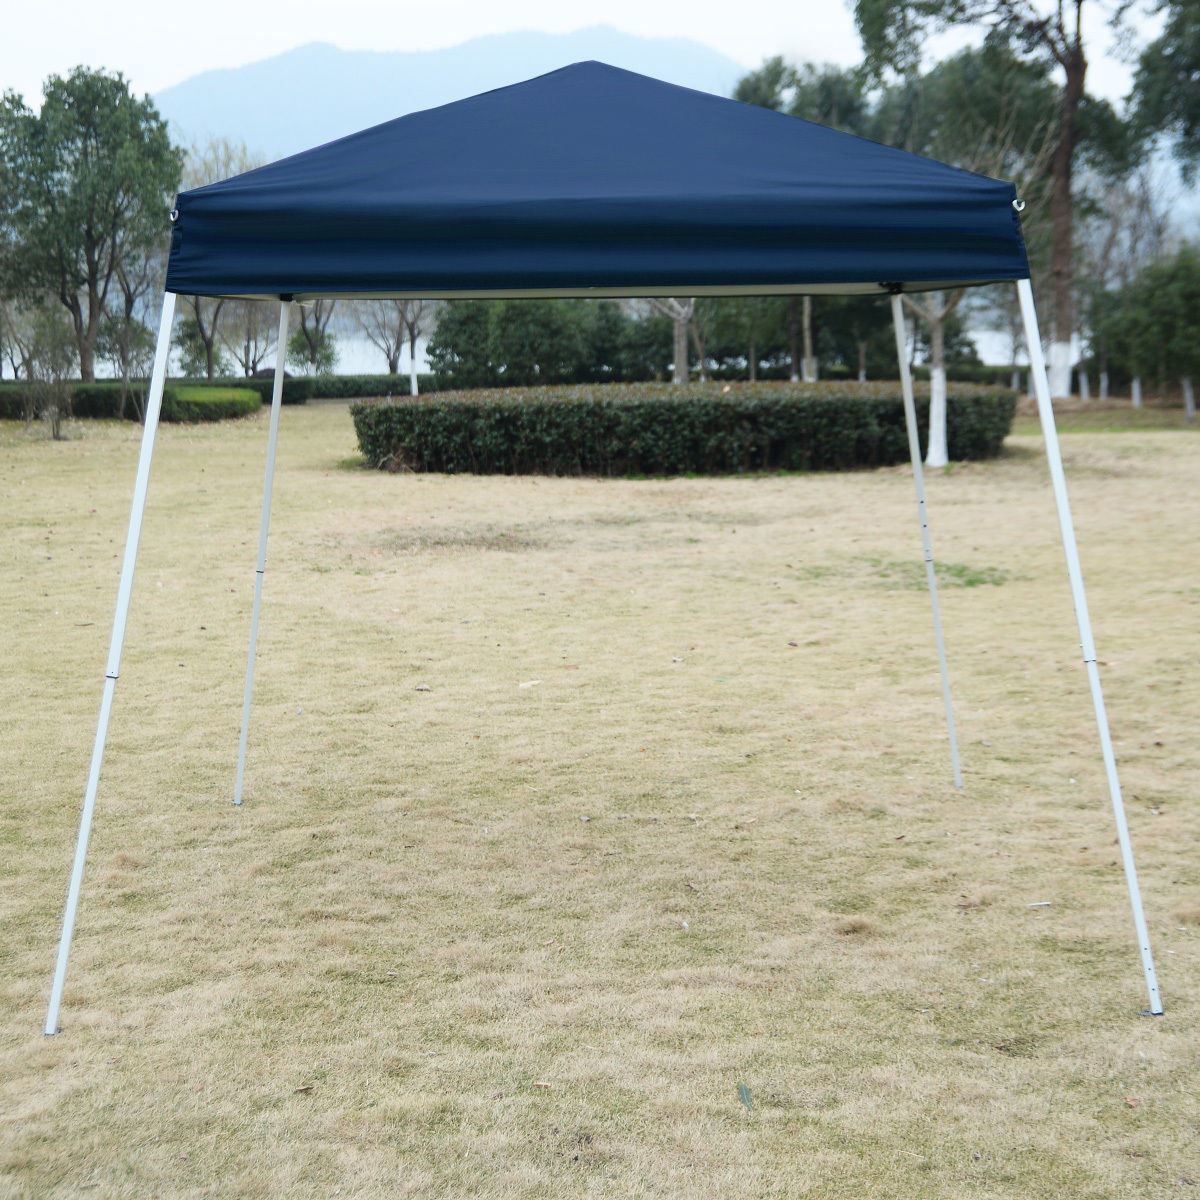 Picture of Outdoor 8'x8' EZ Pop Up Tent Gazebo with Carry Bag - Blue